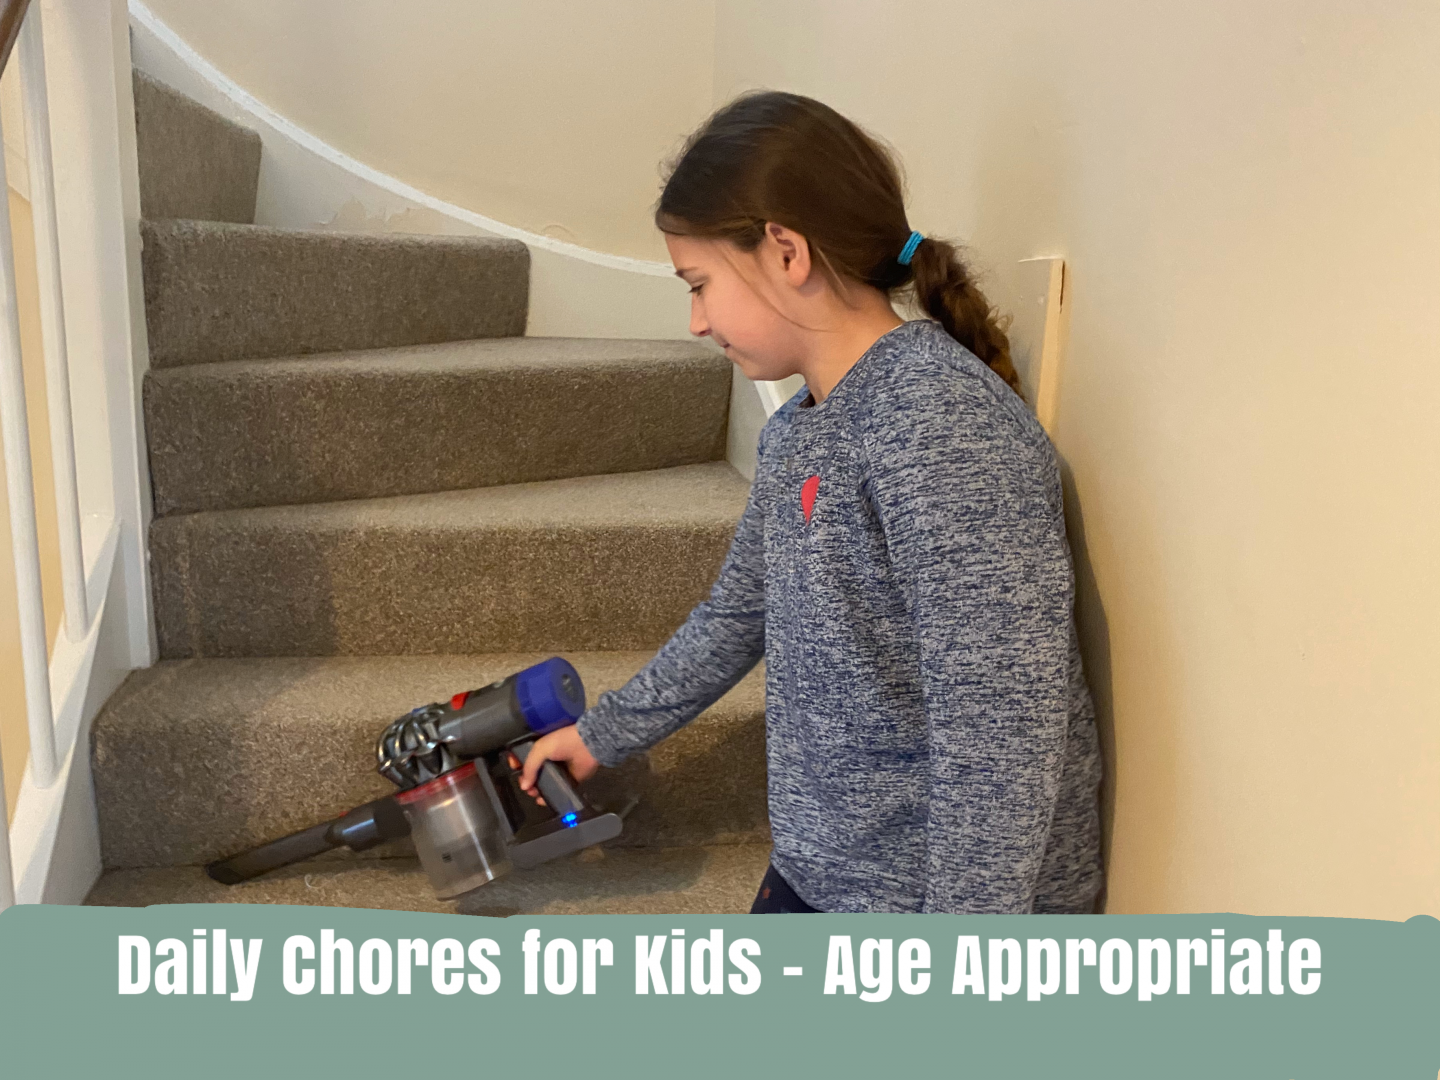 A girl doing chores - hoovering they stairs